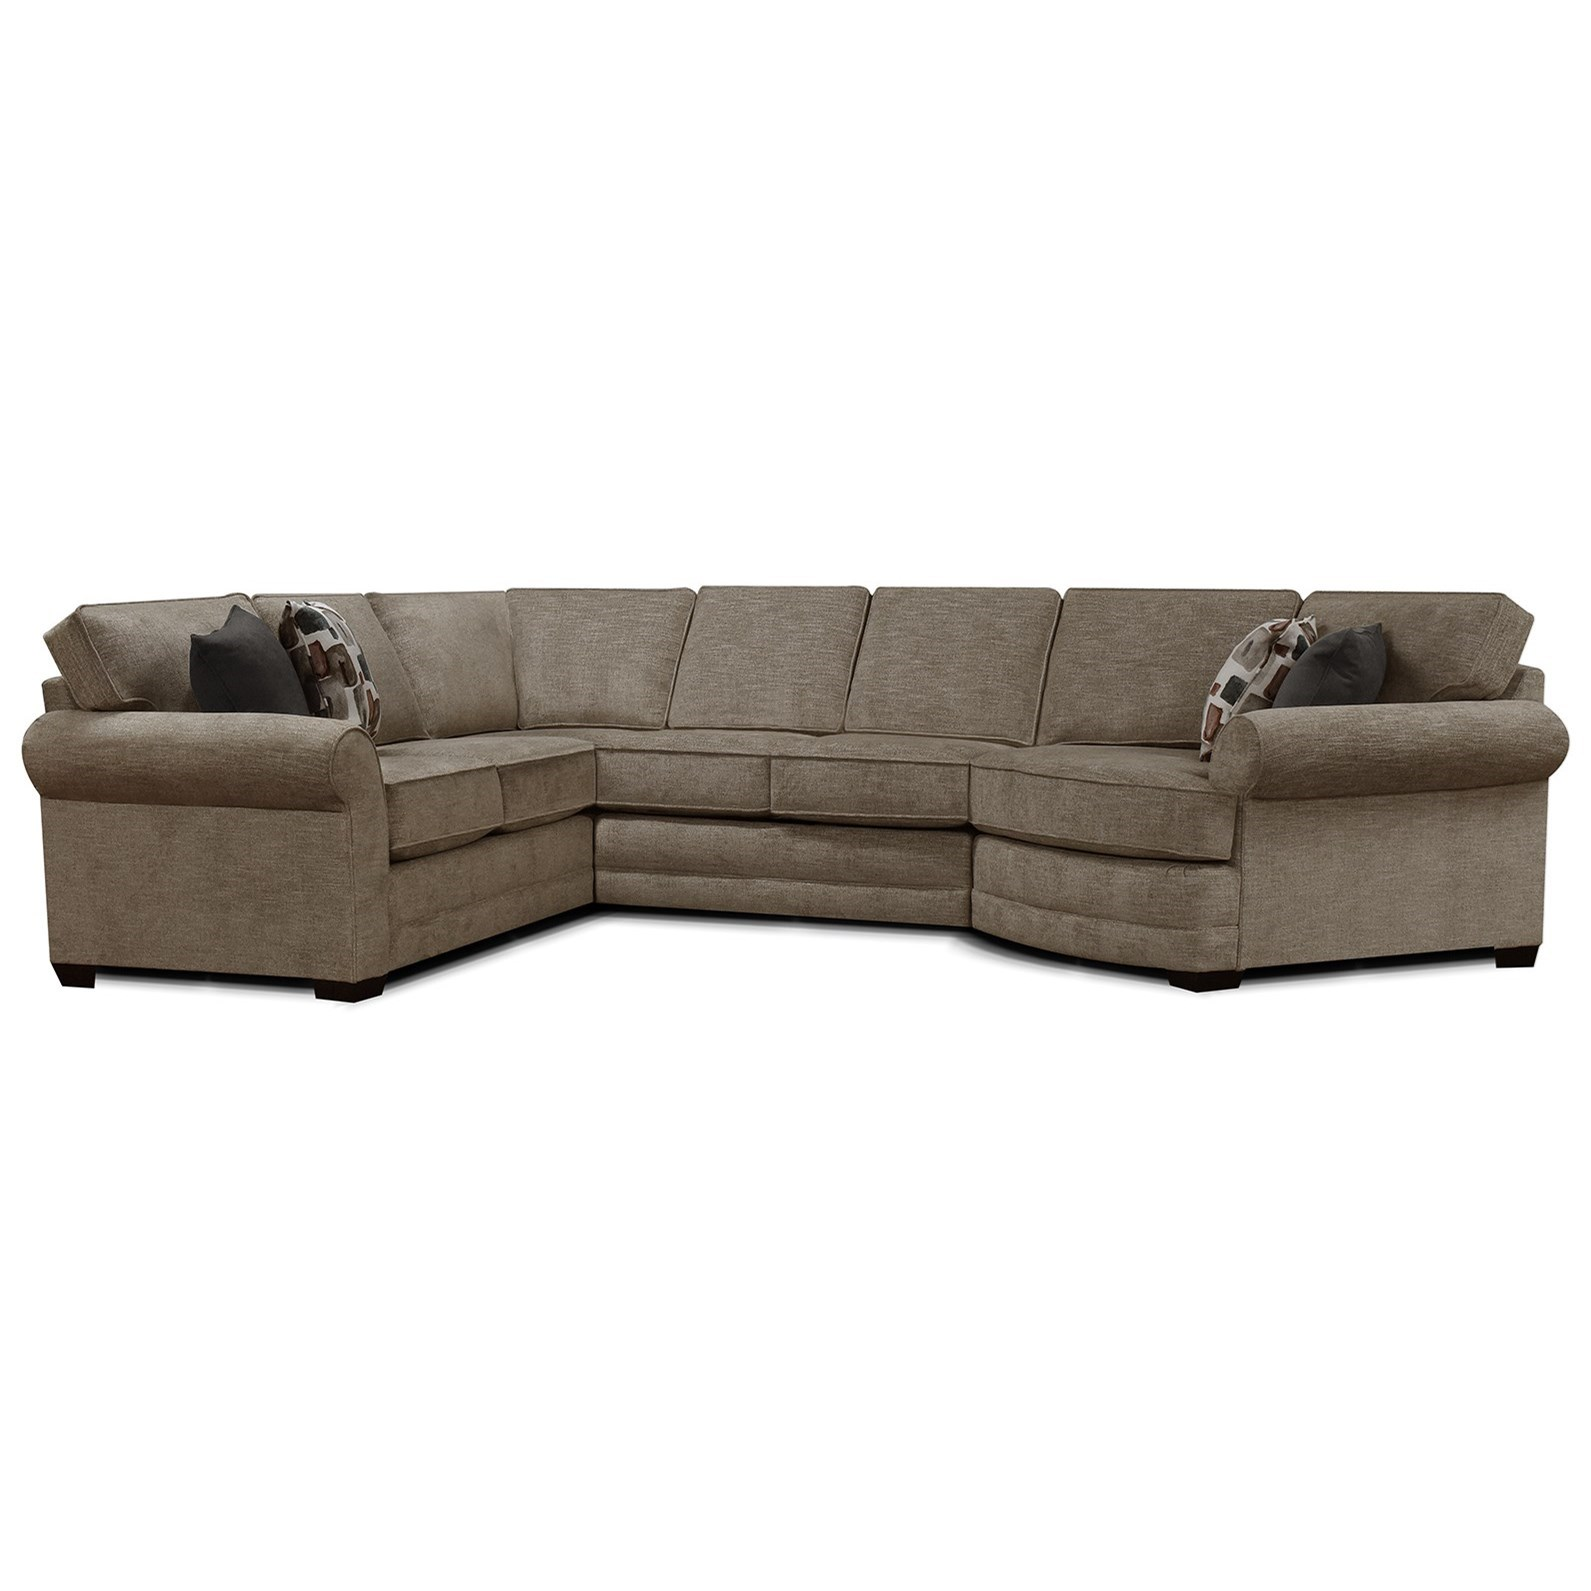 England Brantley 5630-SECT 5 Seat Sectional Sofa with ...